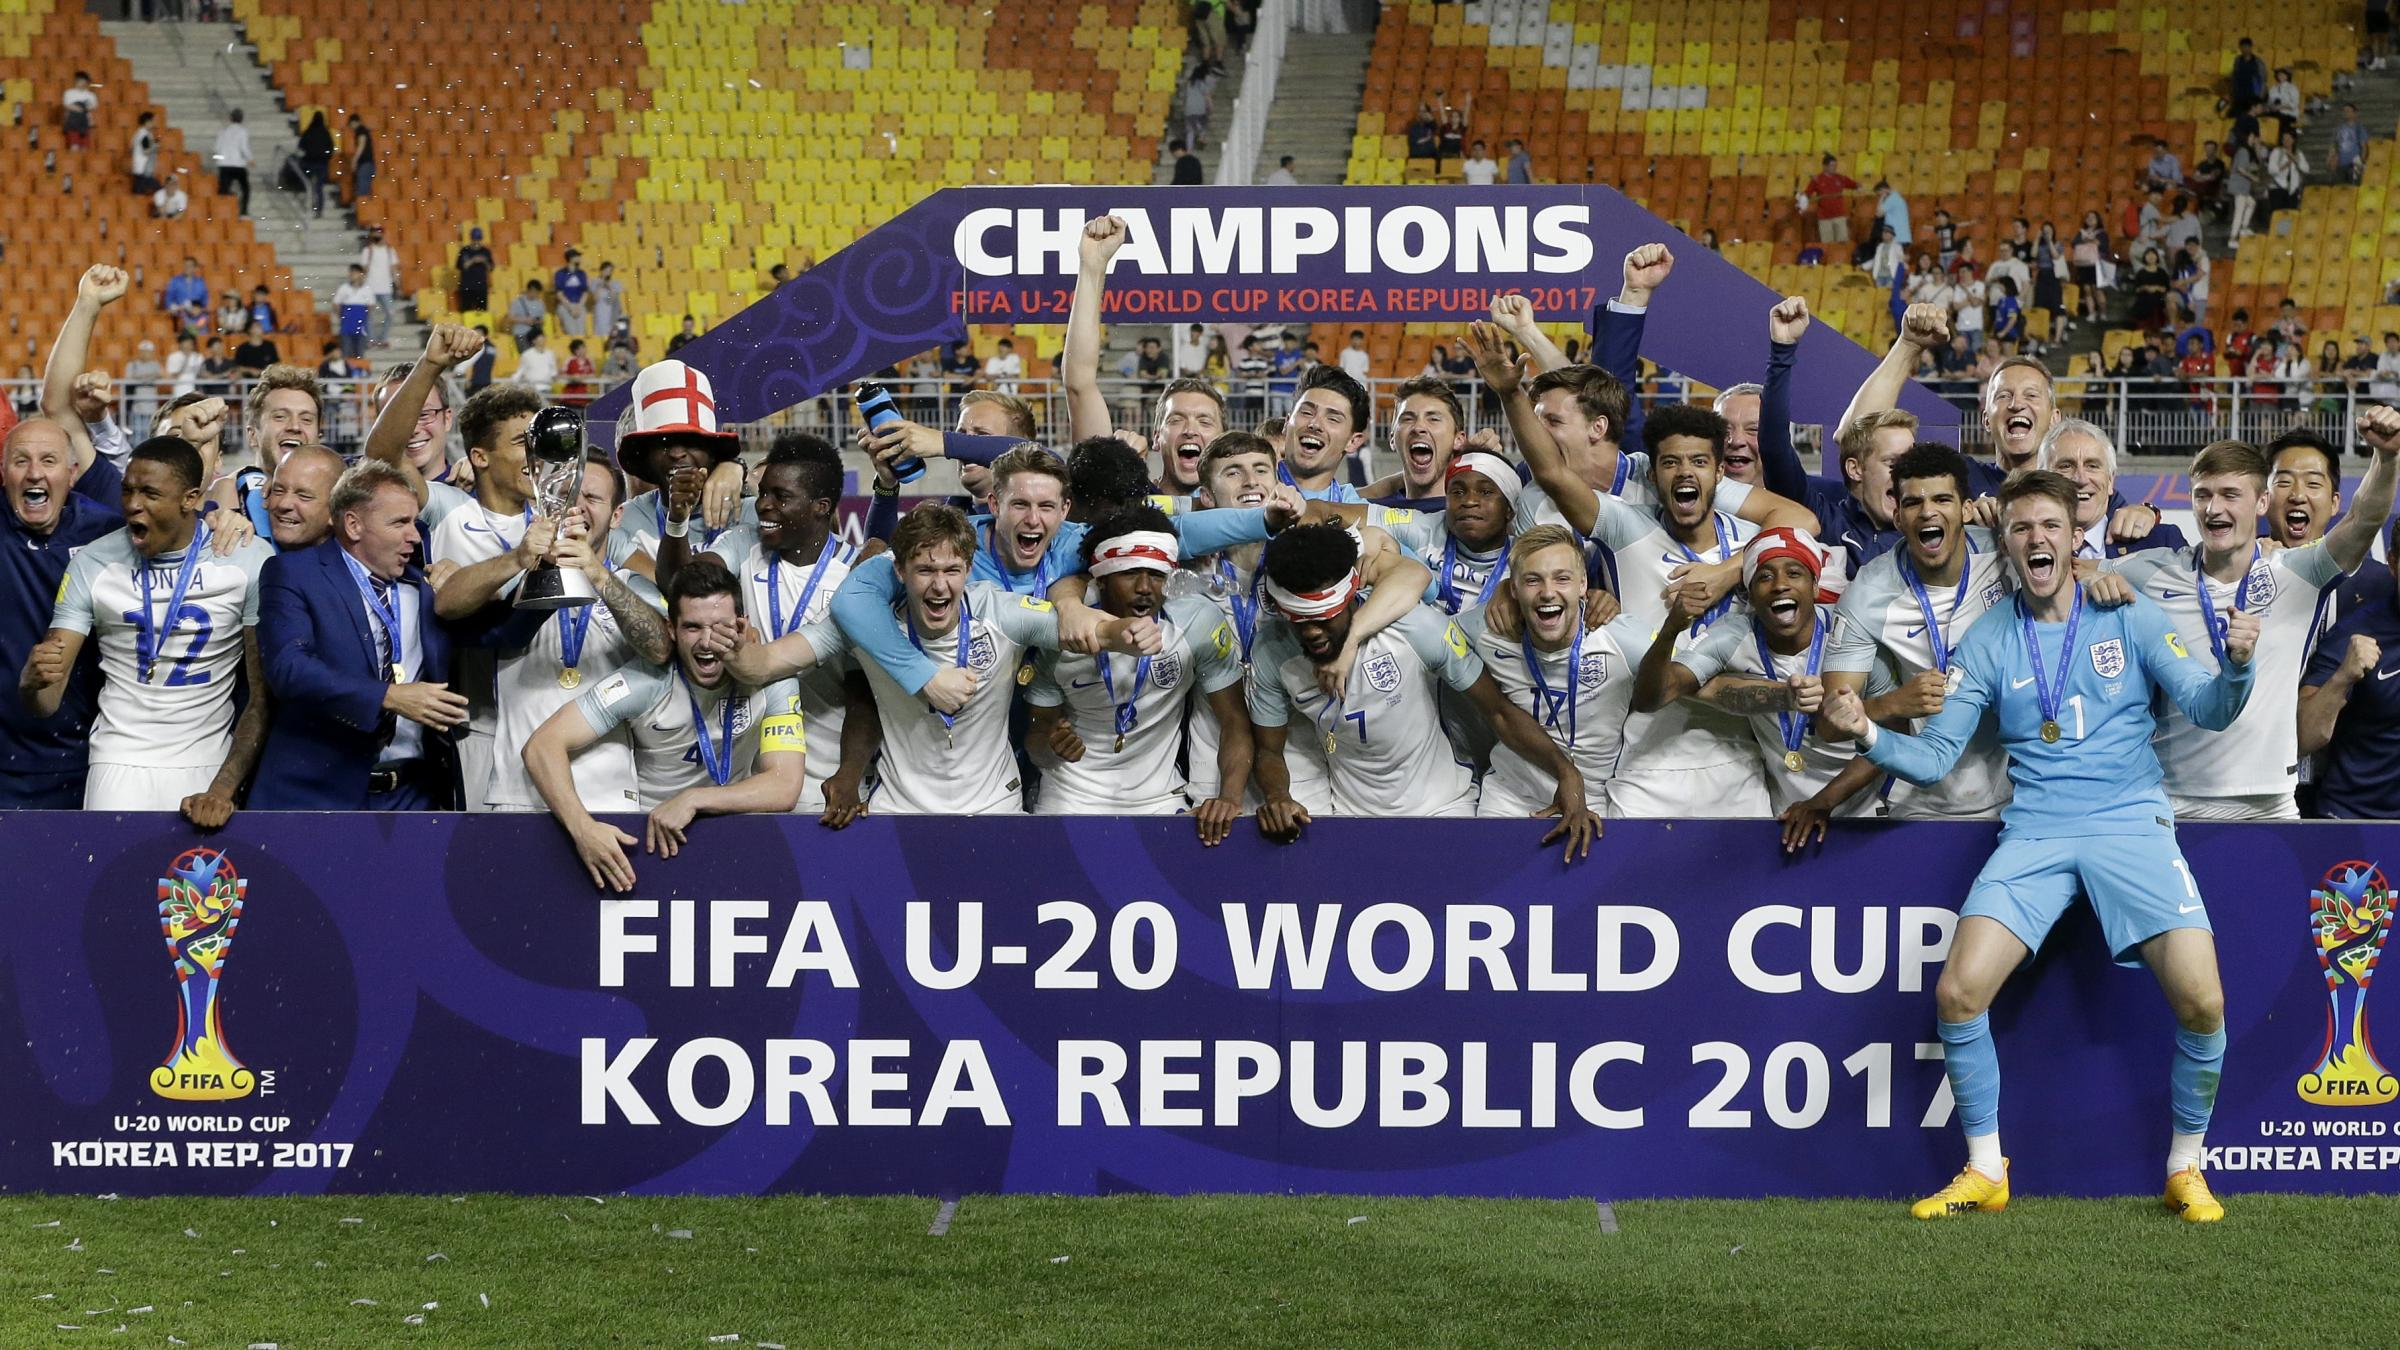 Sheffield-born ace Dominic Calvert-Lewin fires England to World Cup glory